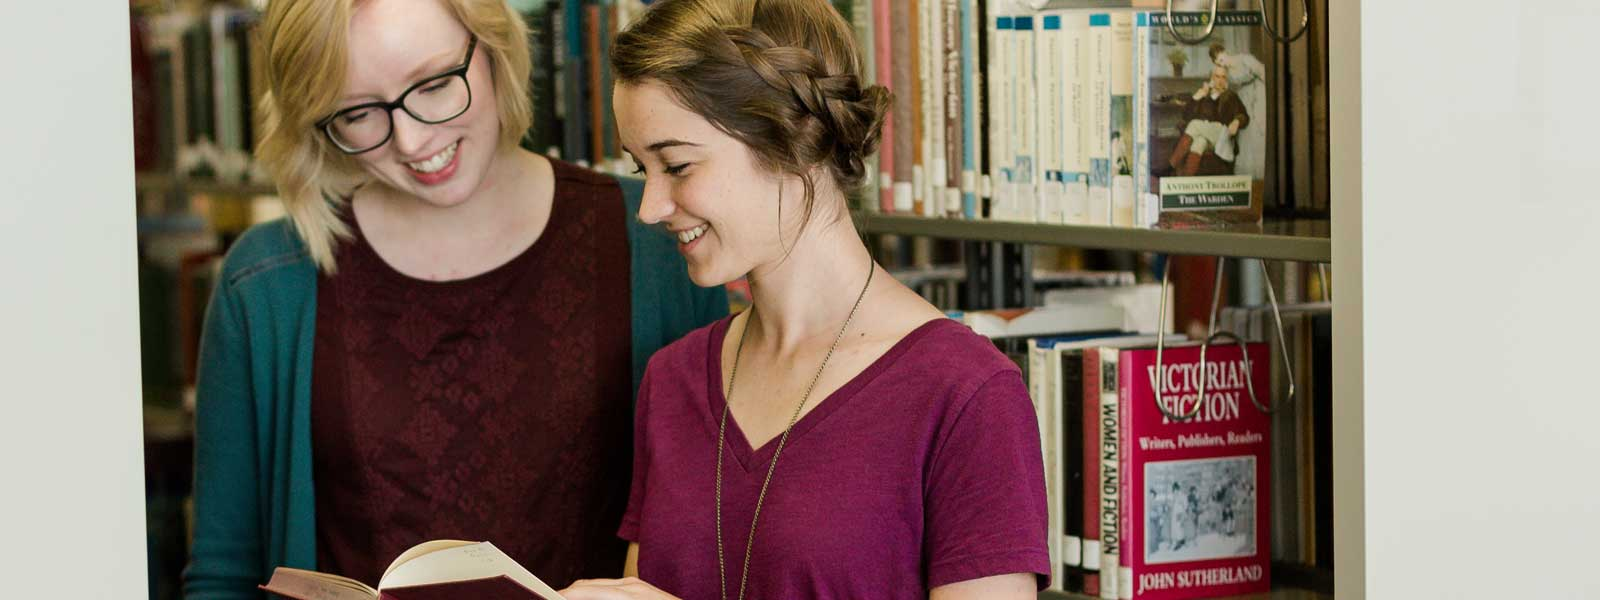 two students look at book in library